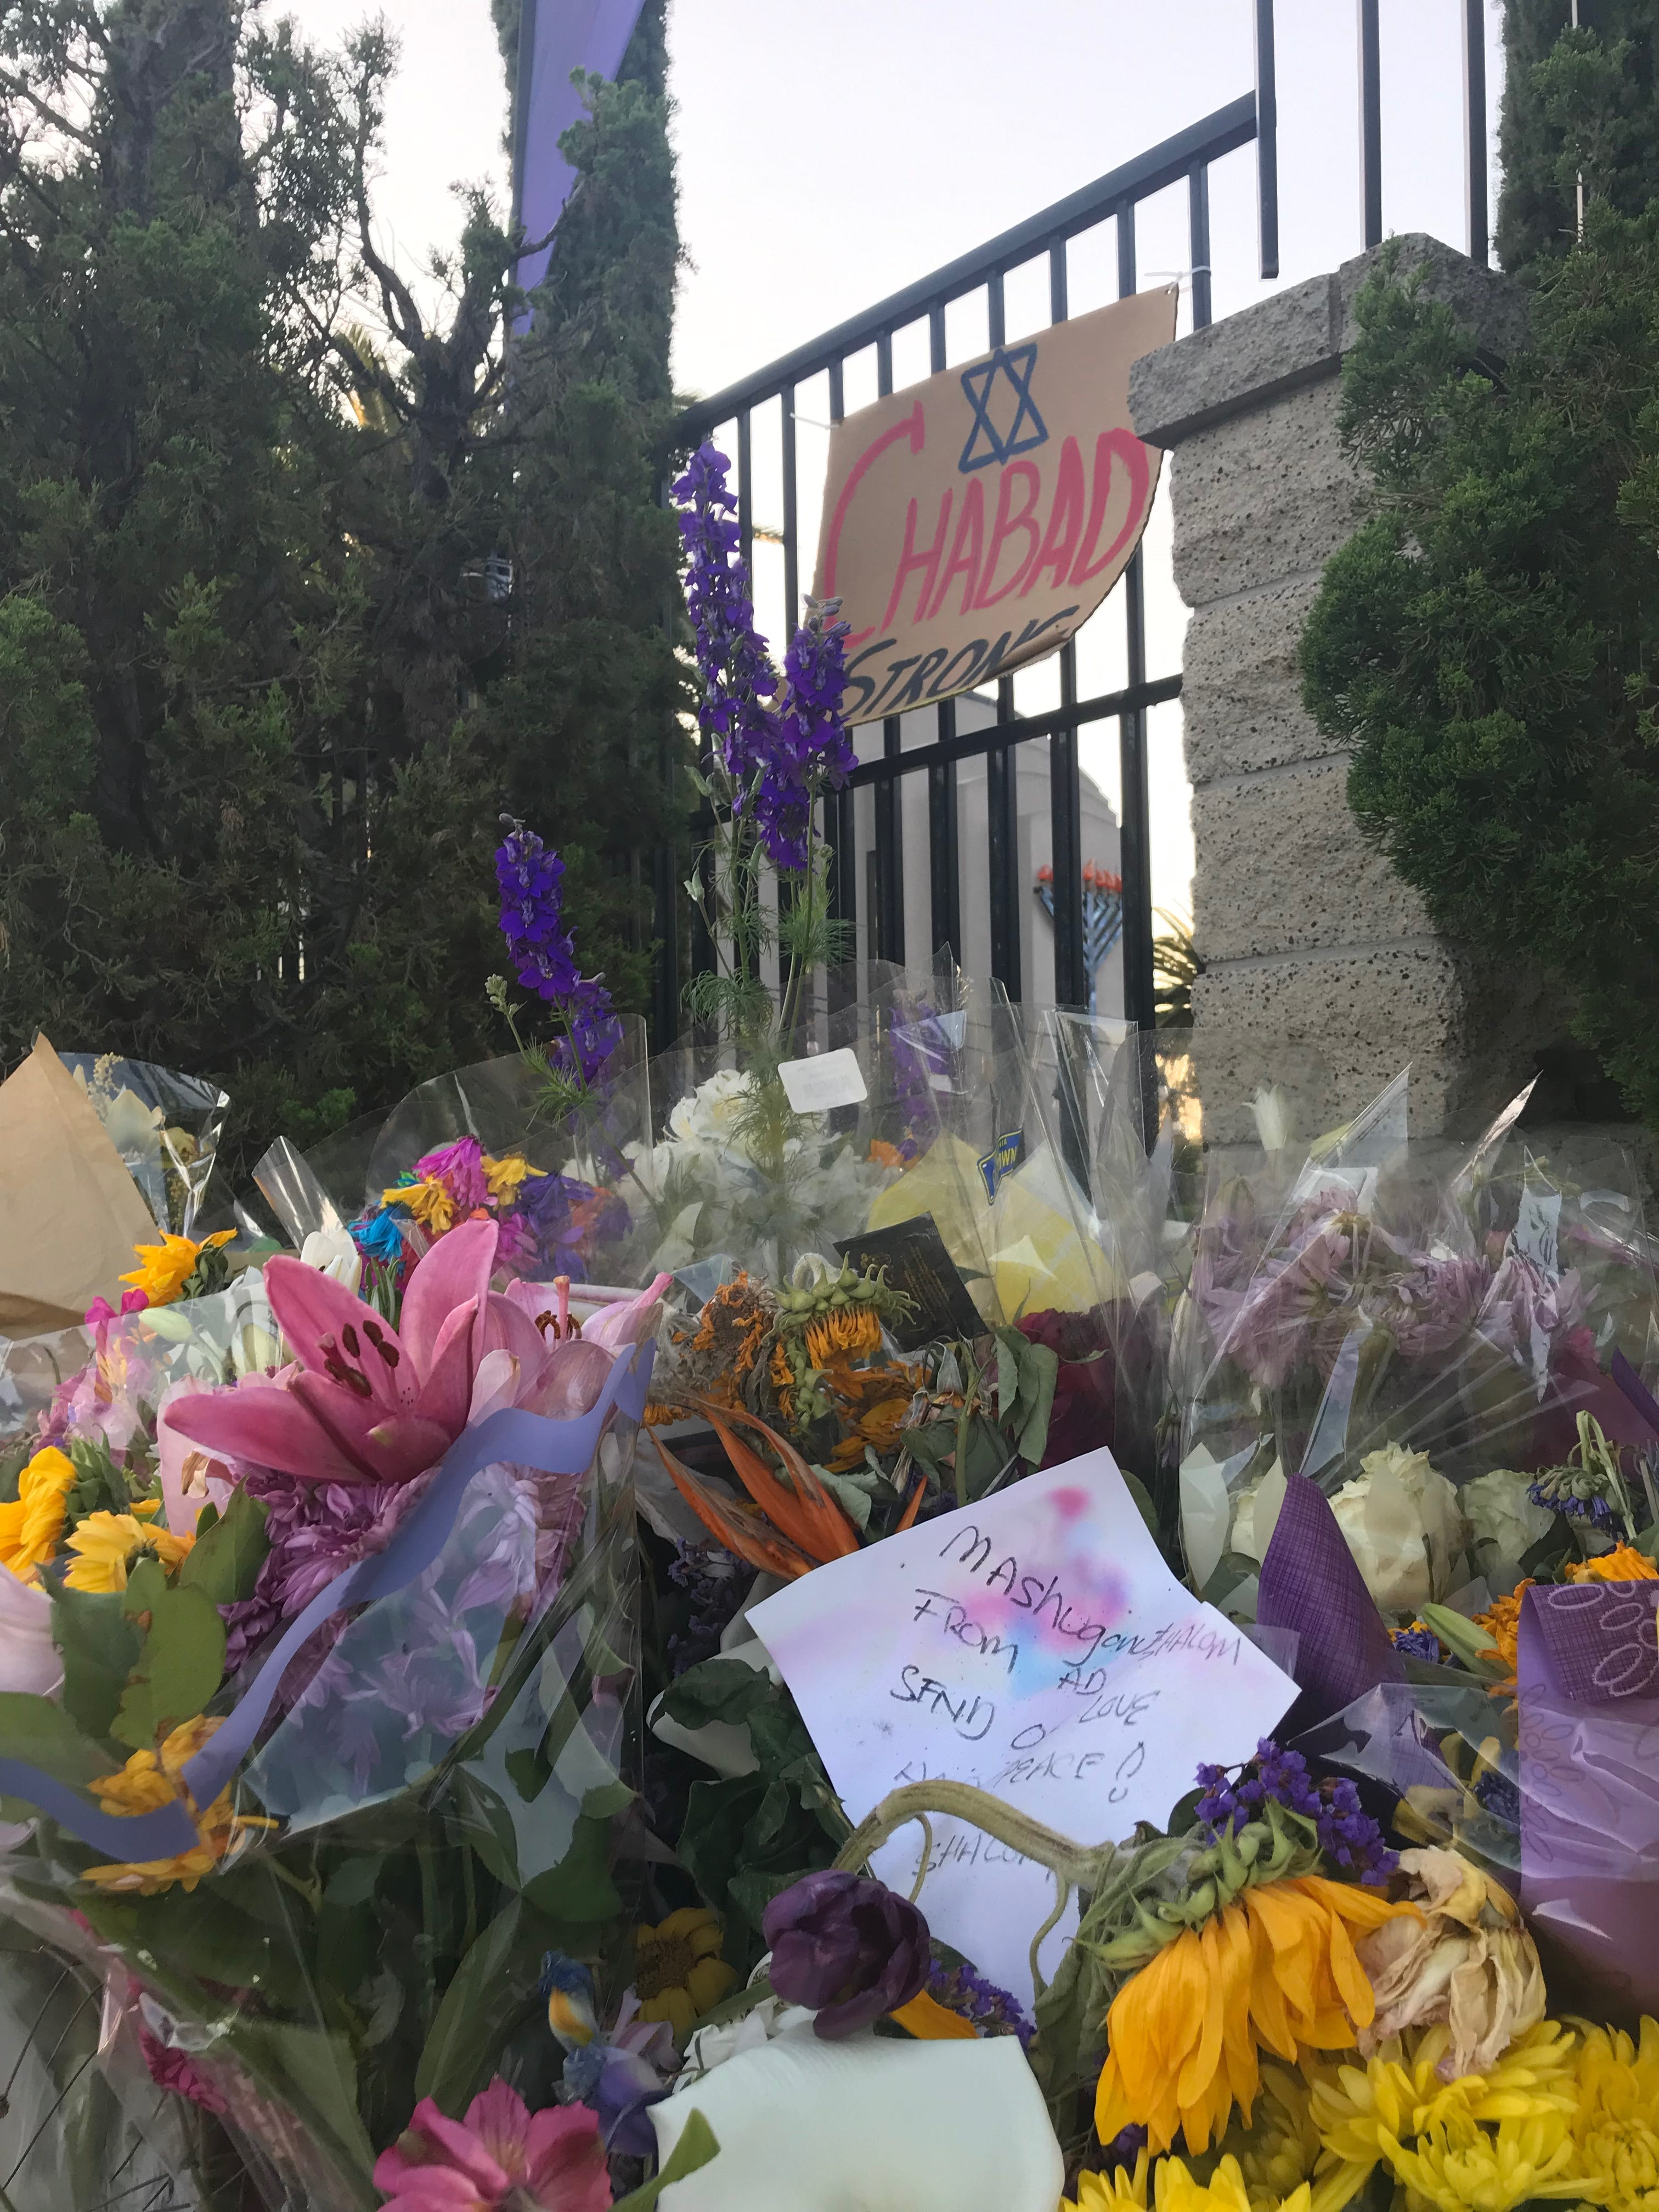 Flowers and messages of support line a street corner adjacent to Chabad of Poway on Friday night.